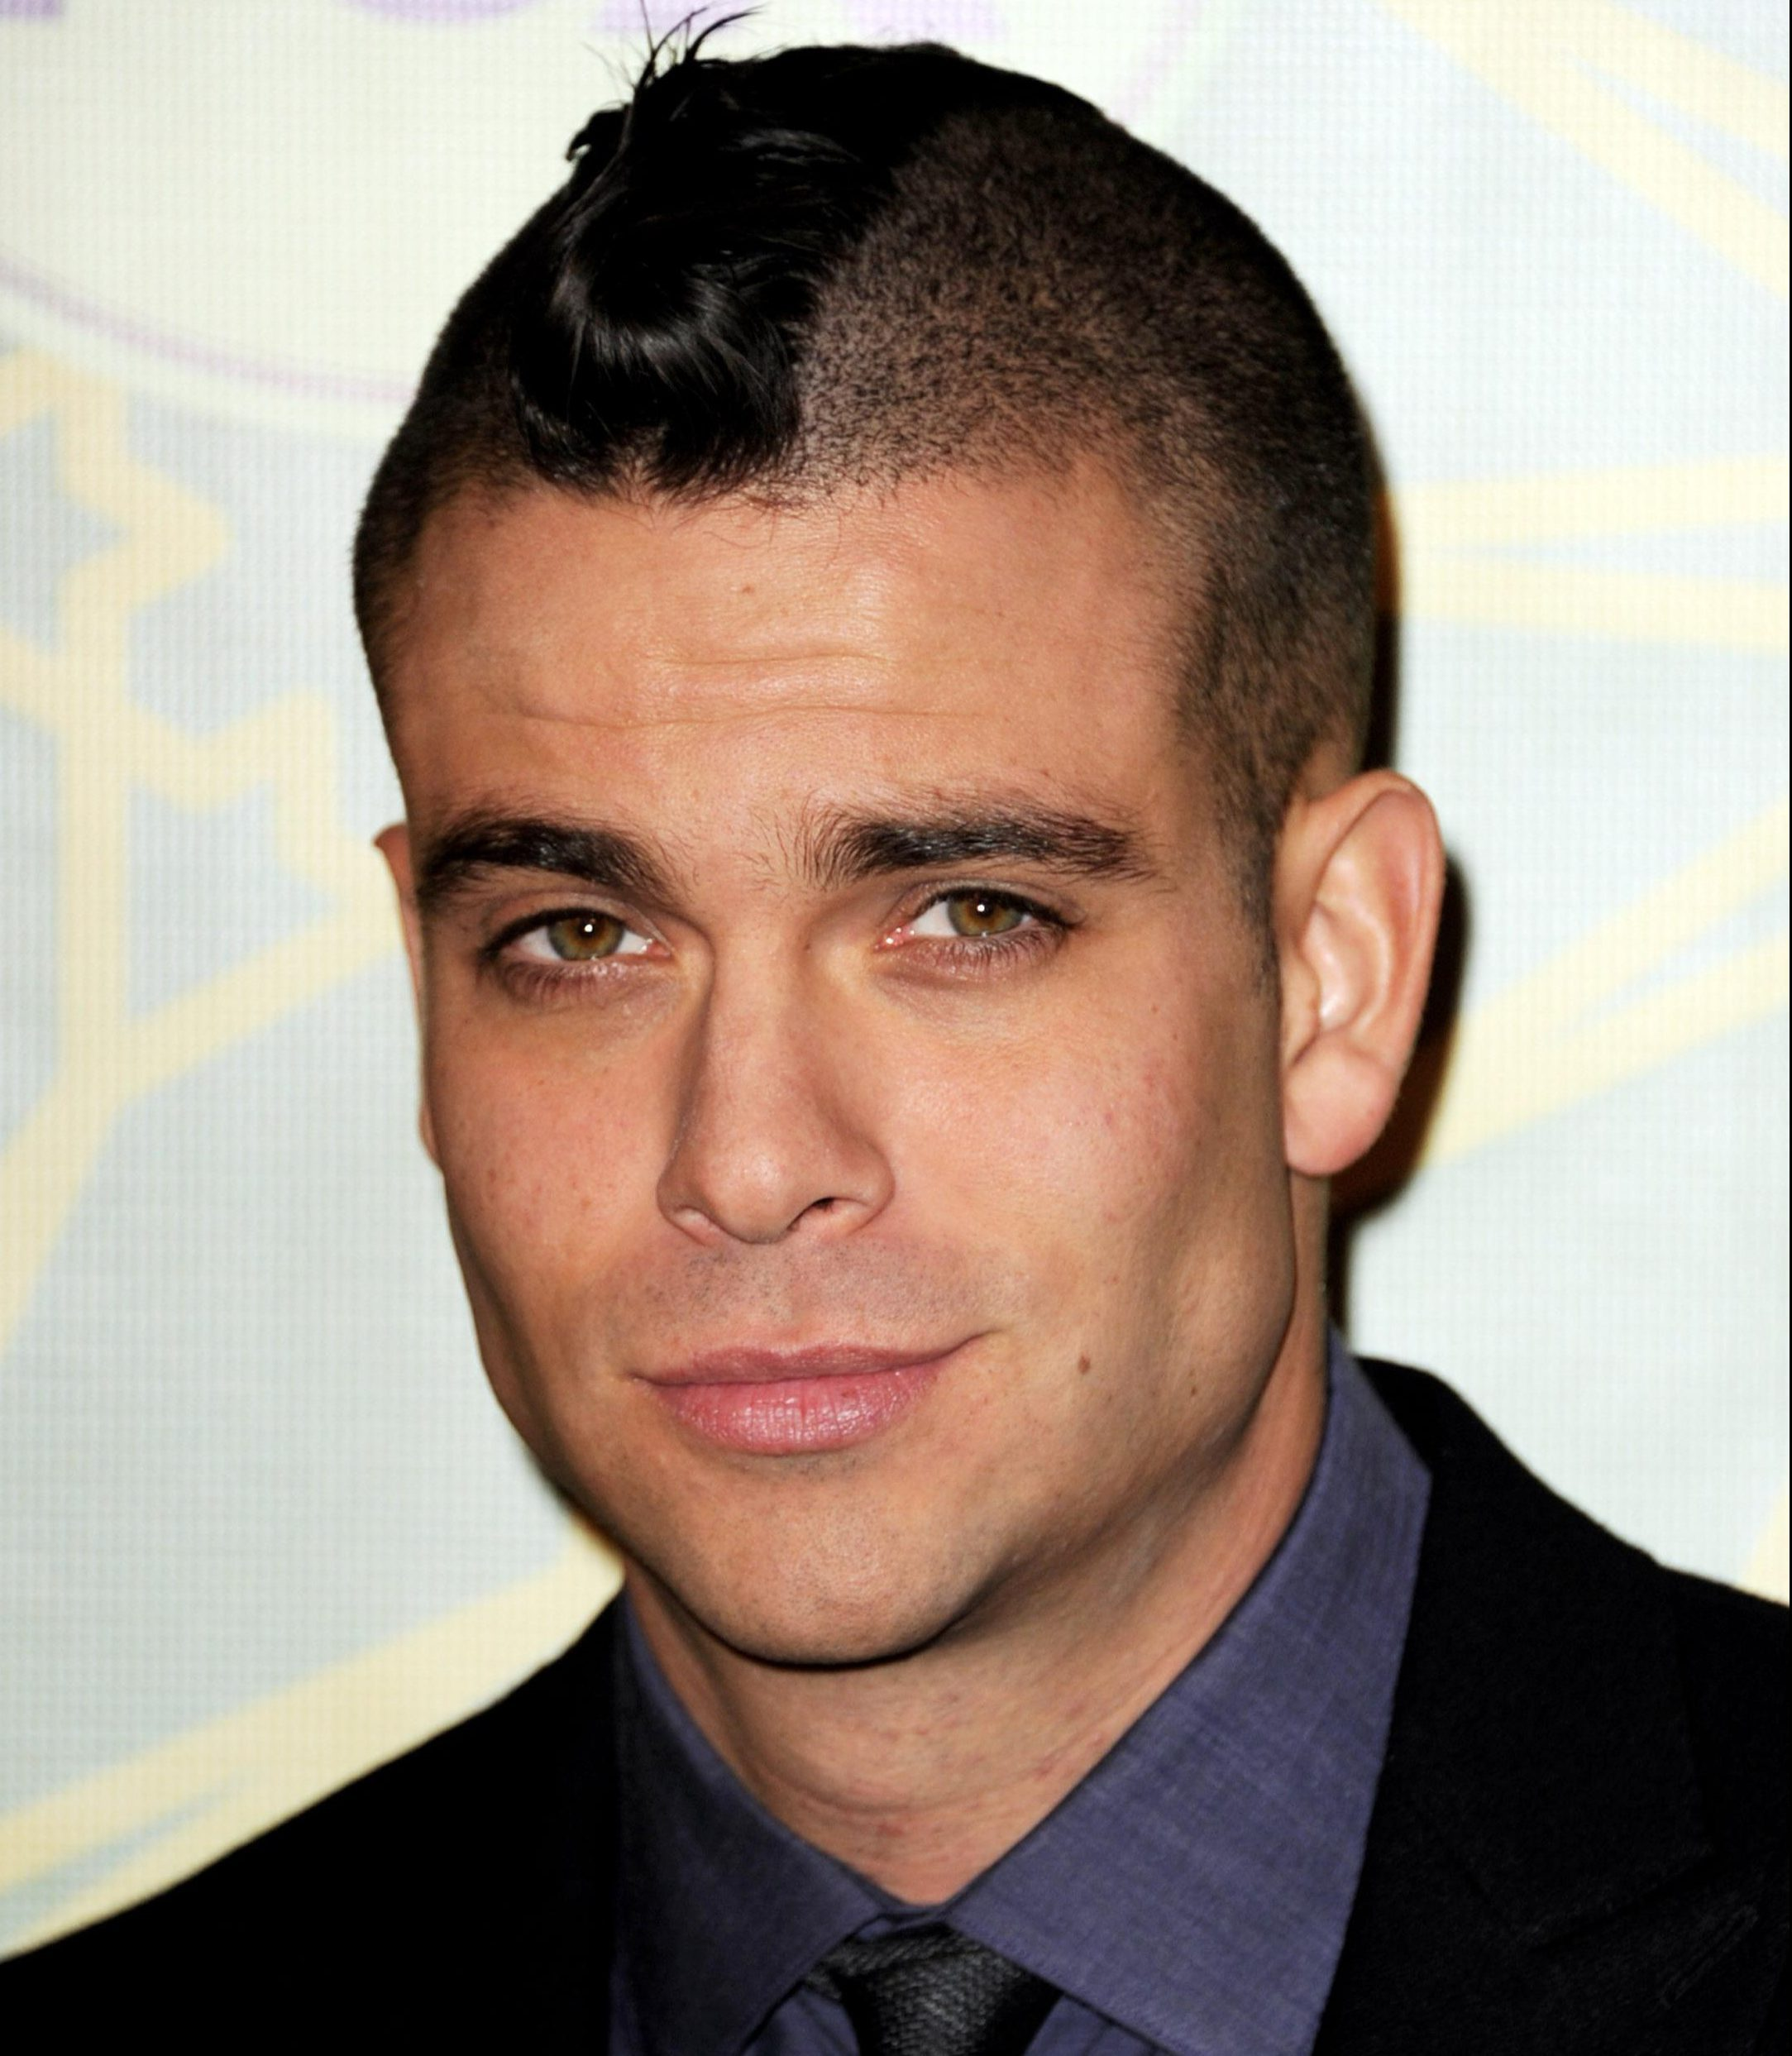 Mark Salling was also found dead in his room of apparent suicide